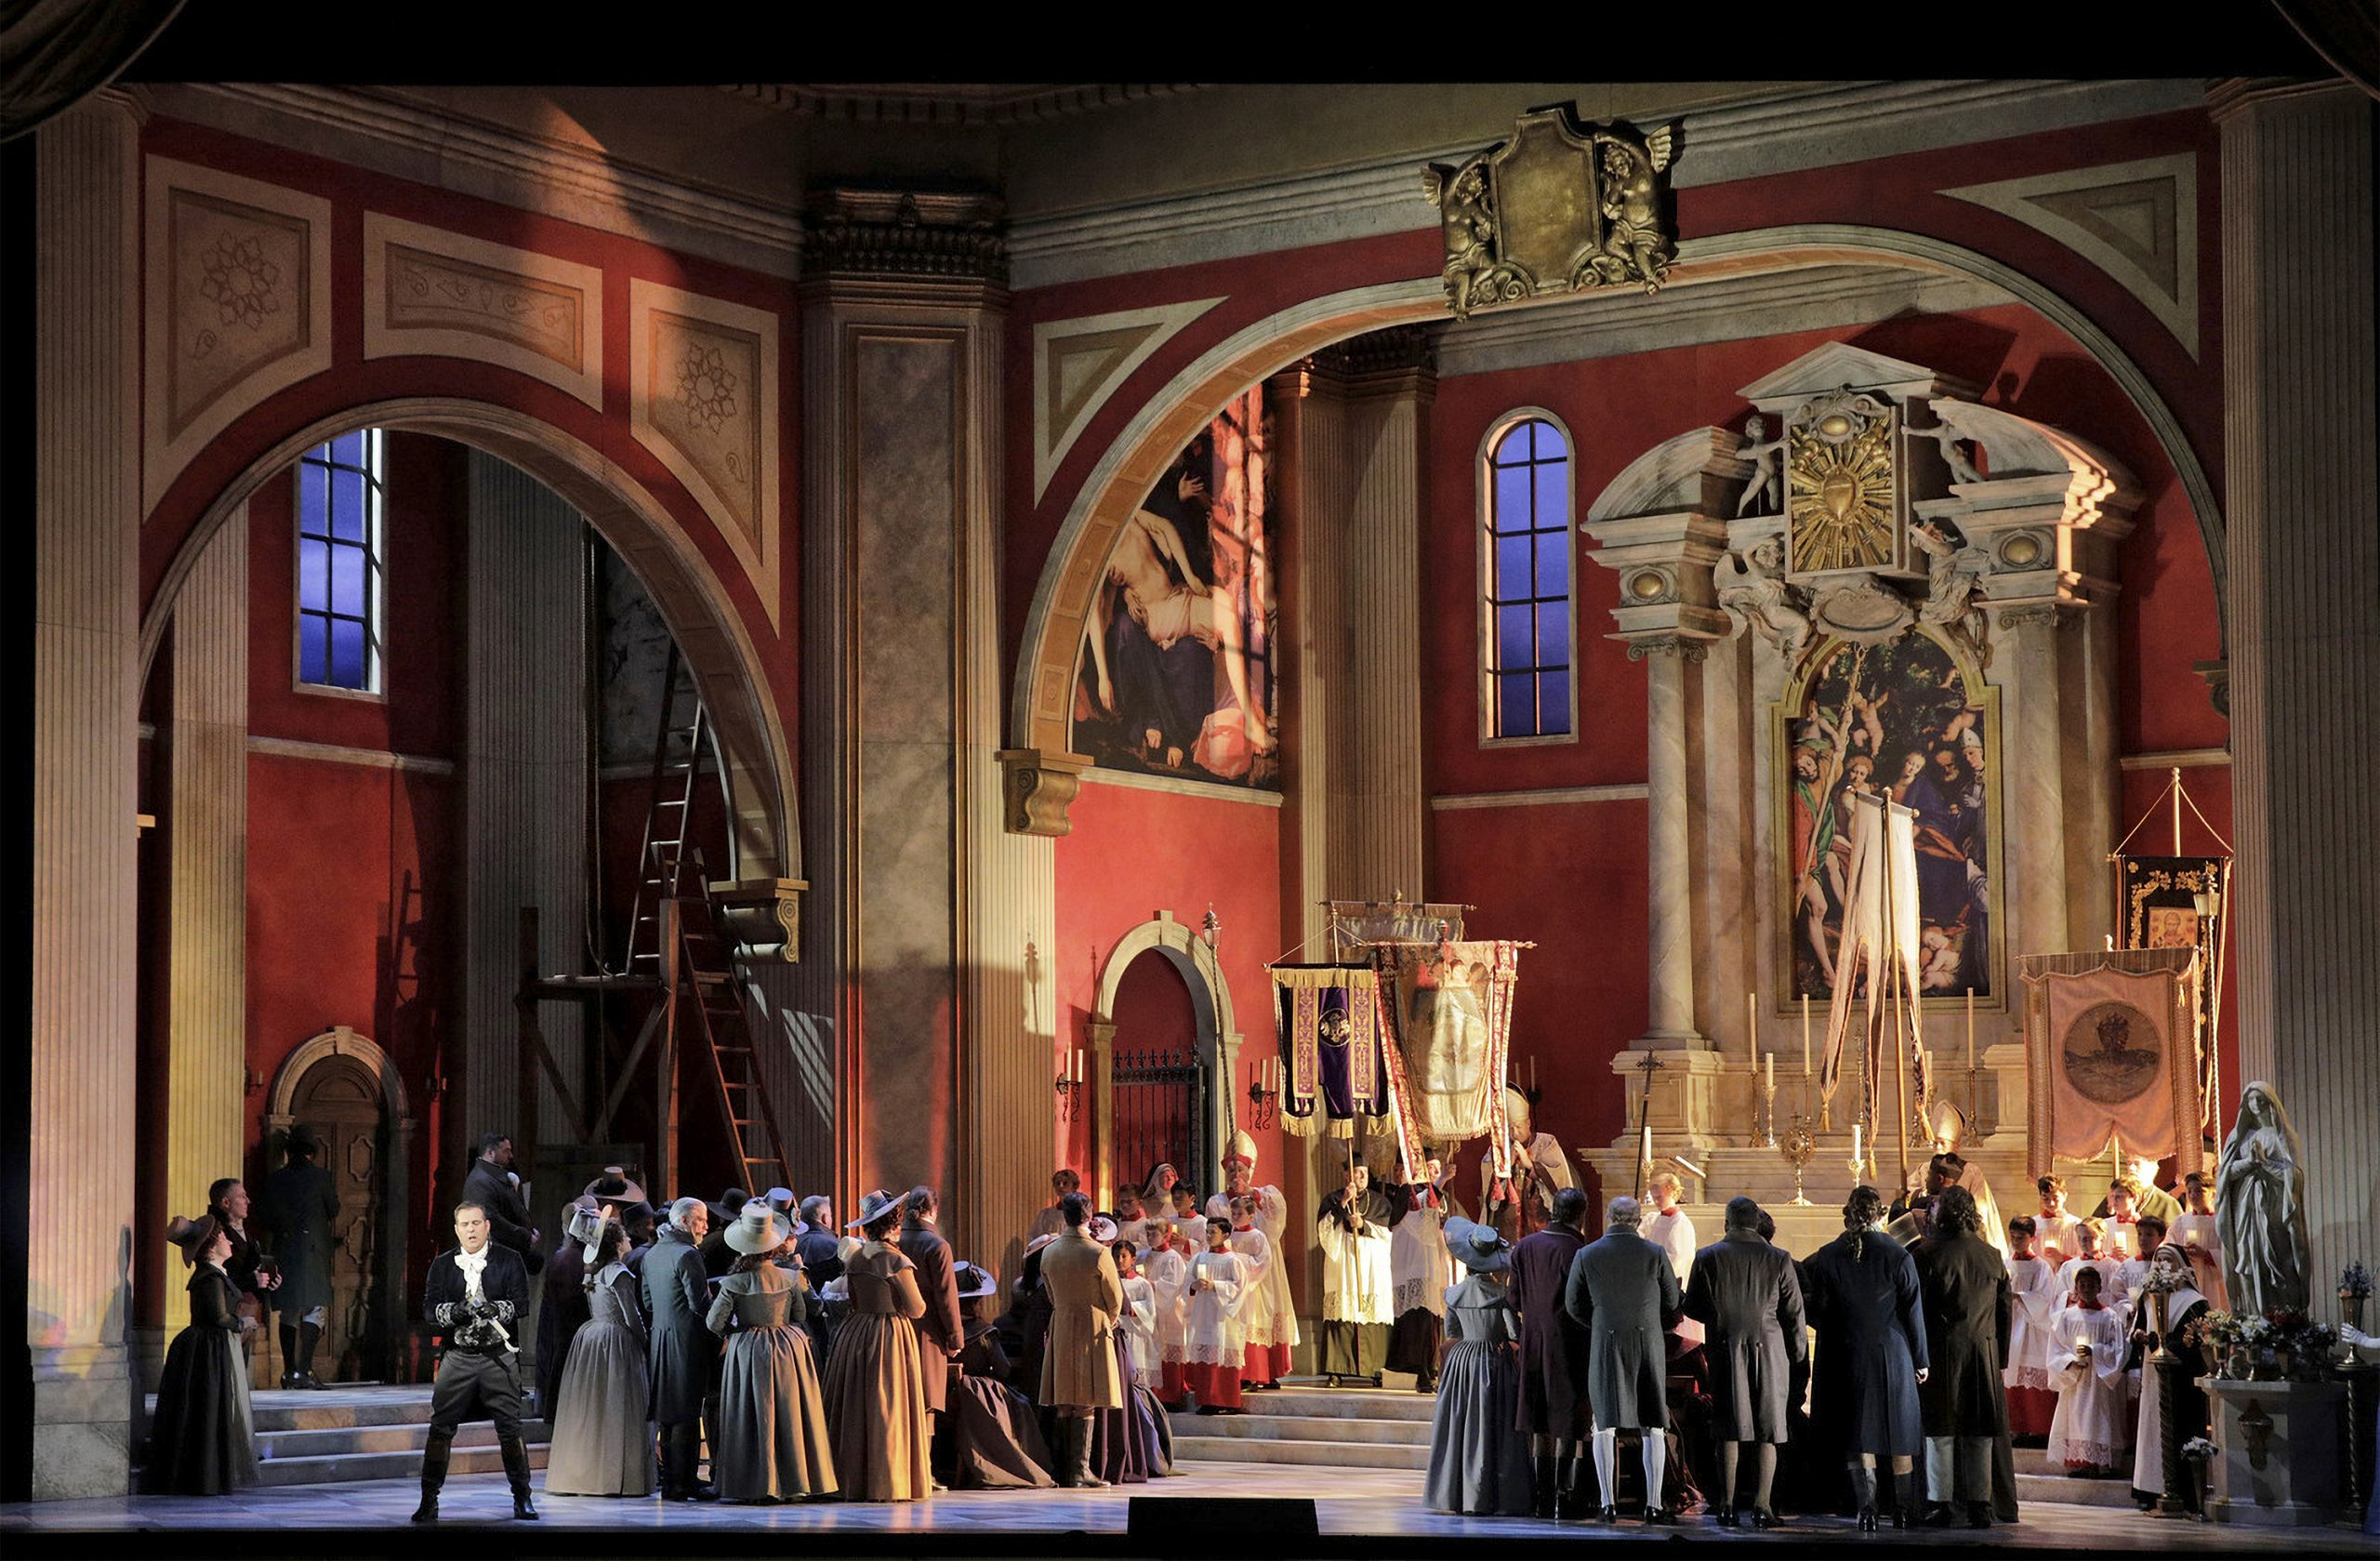 S.F. Opera returns to War Memorial Opera House in August with Puccini's 'Tosca'